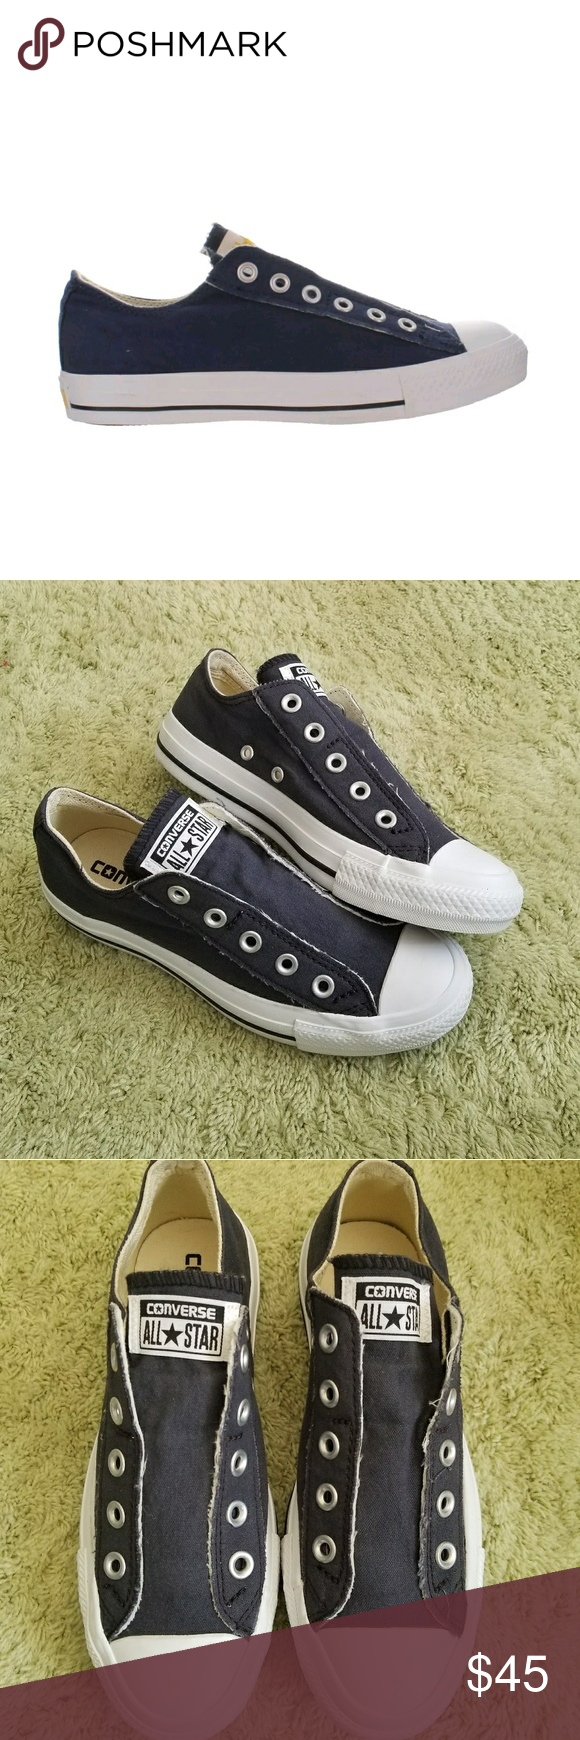 e013fd49848b8b Converse Ox All Star Navy Blue No Lace Low Tops New without box Converse  All Star Ox Slip On Sneakers No laces Navy blue Canvas upper